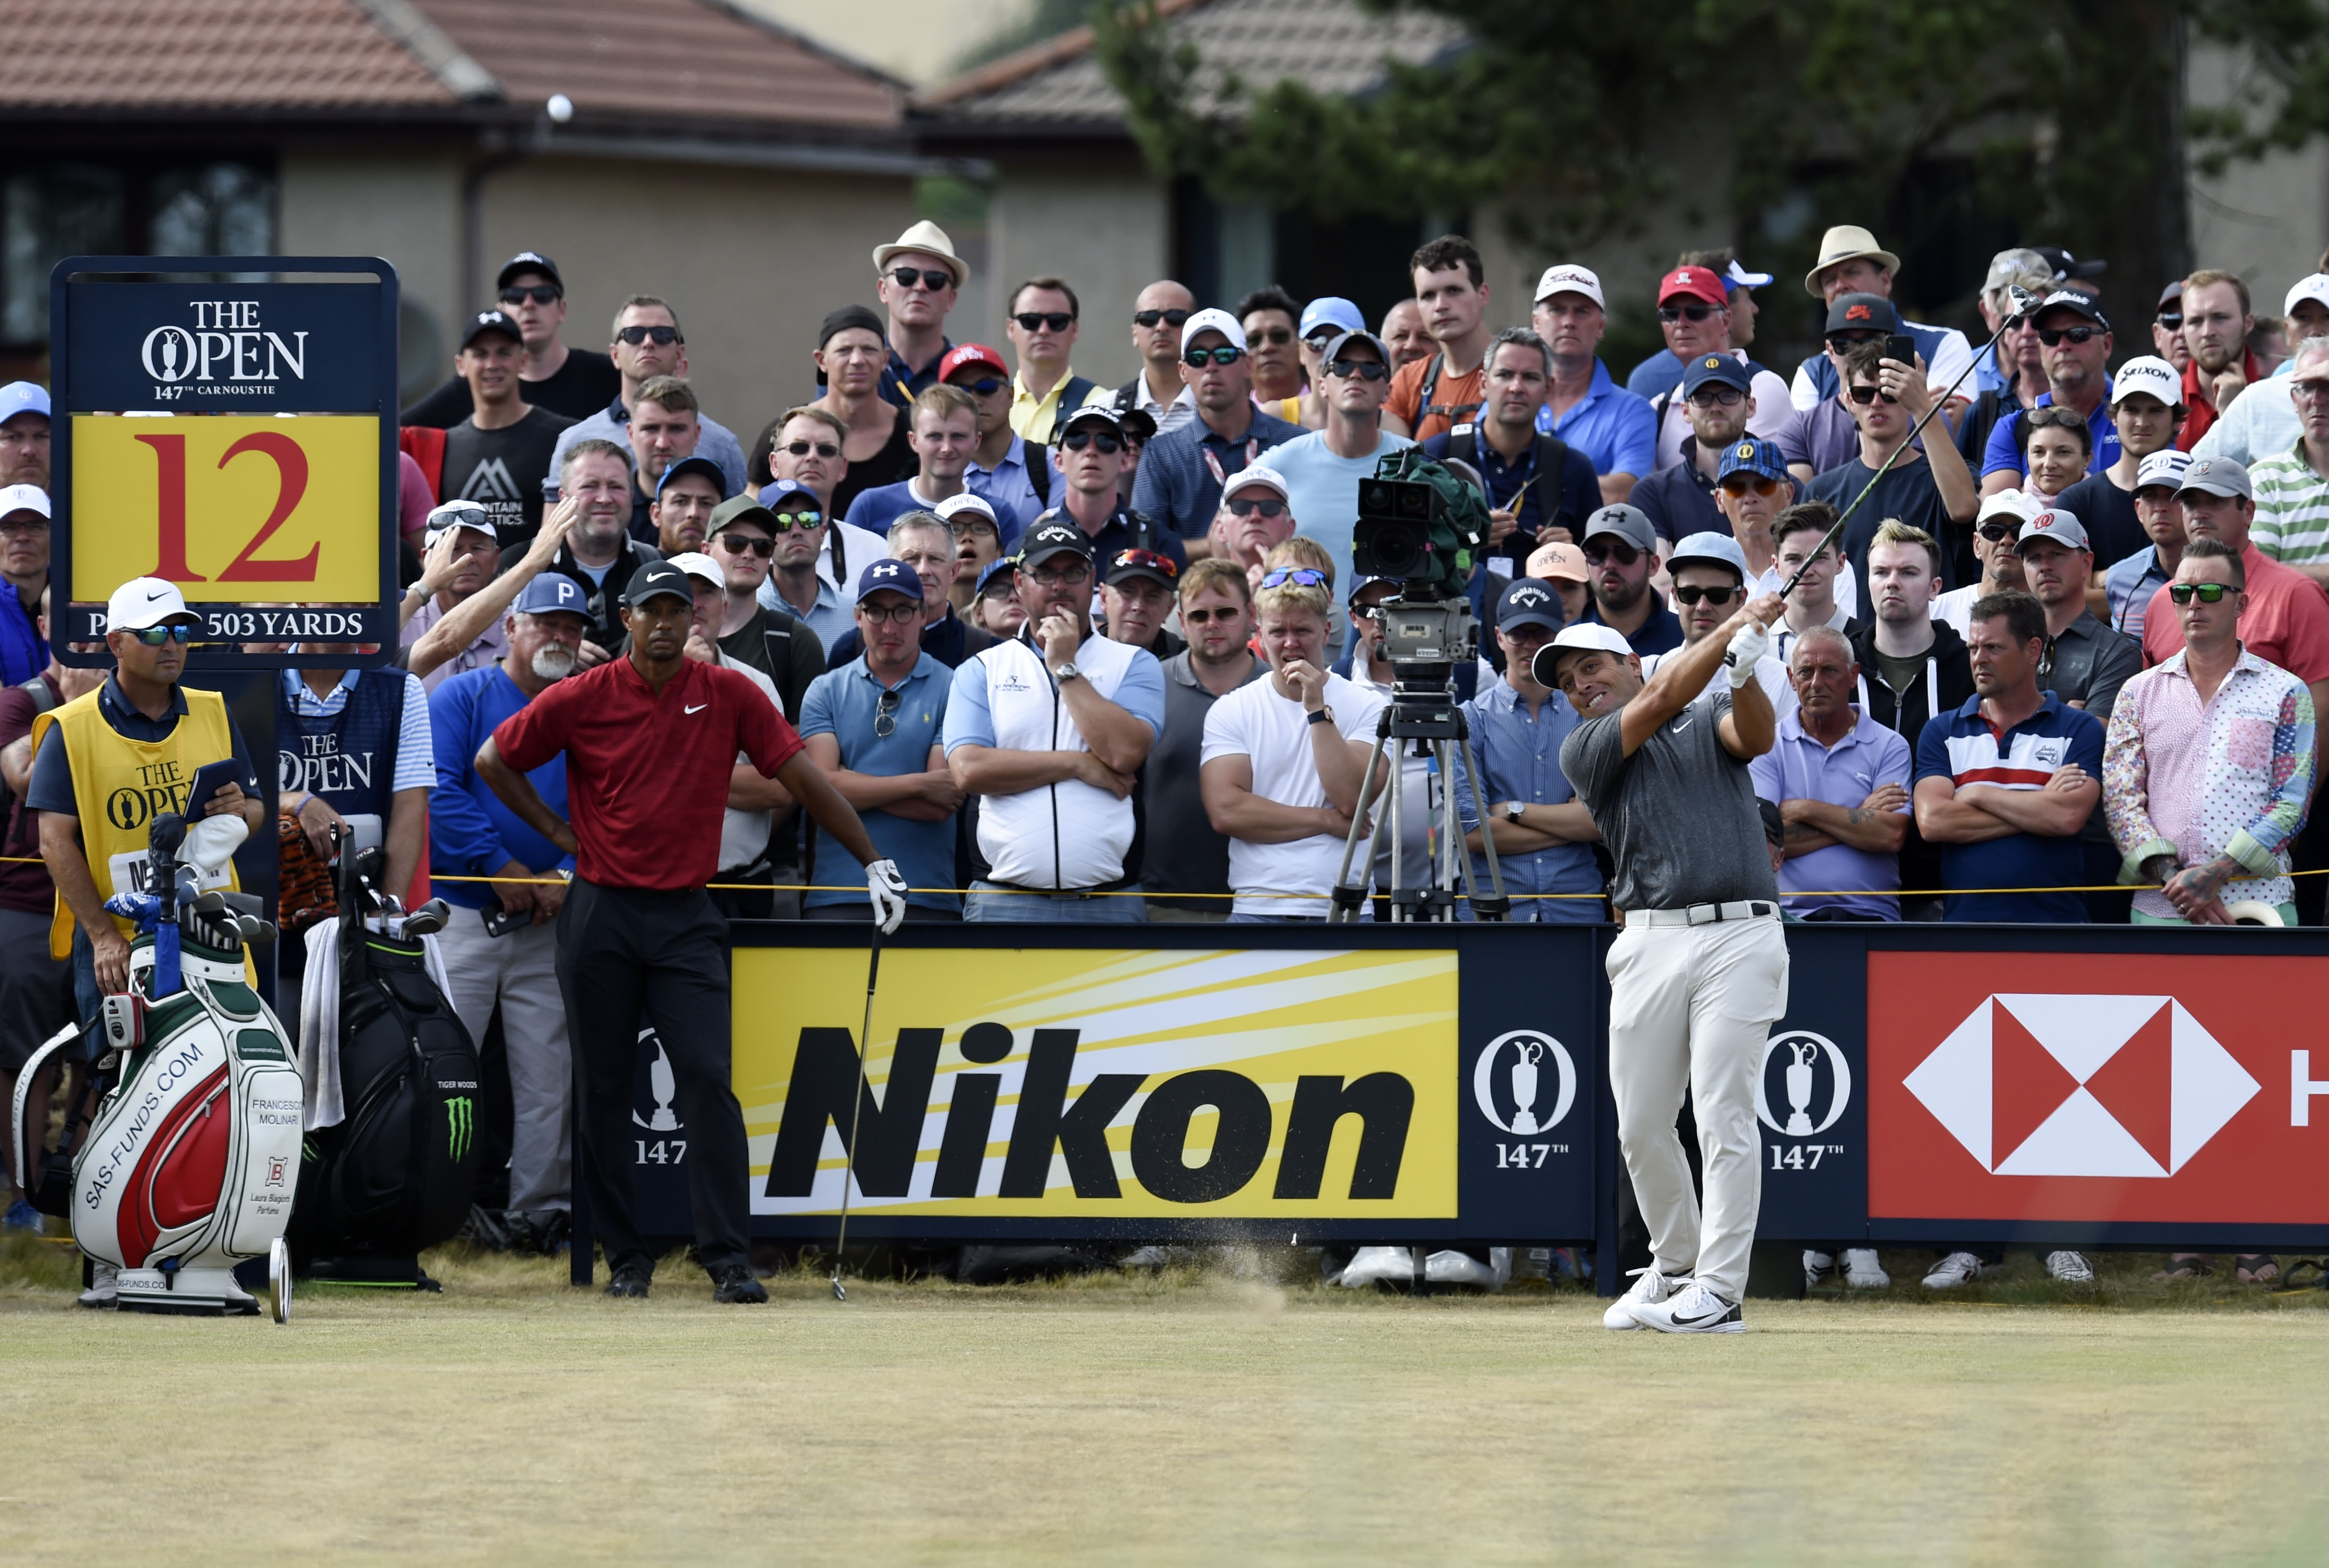 Jul 22, 2018; Carnoustie, Angus, SCT; Francesco Molinari plays a shot in front of Tiger Woods on the 12th tee during the final round of The Open Championship golf tournament at Carnoustie Golf Links. Mandatory Credit: Ian Rutherford-USA TODAY Sports